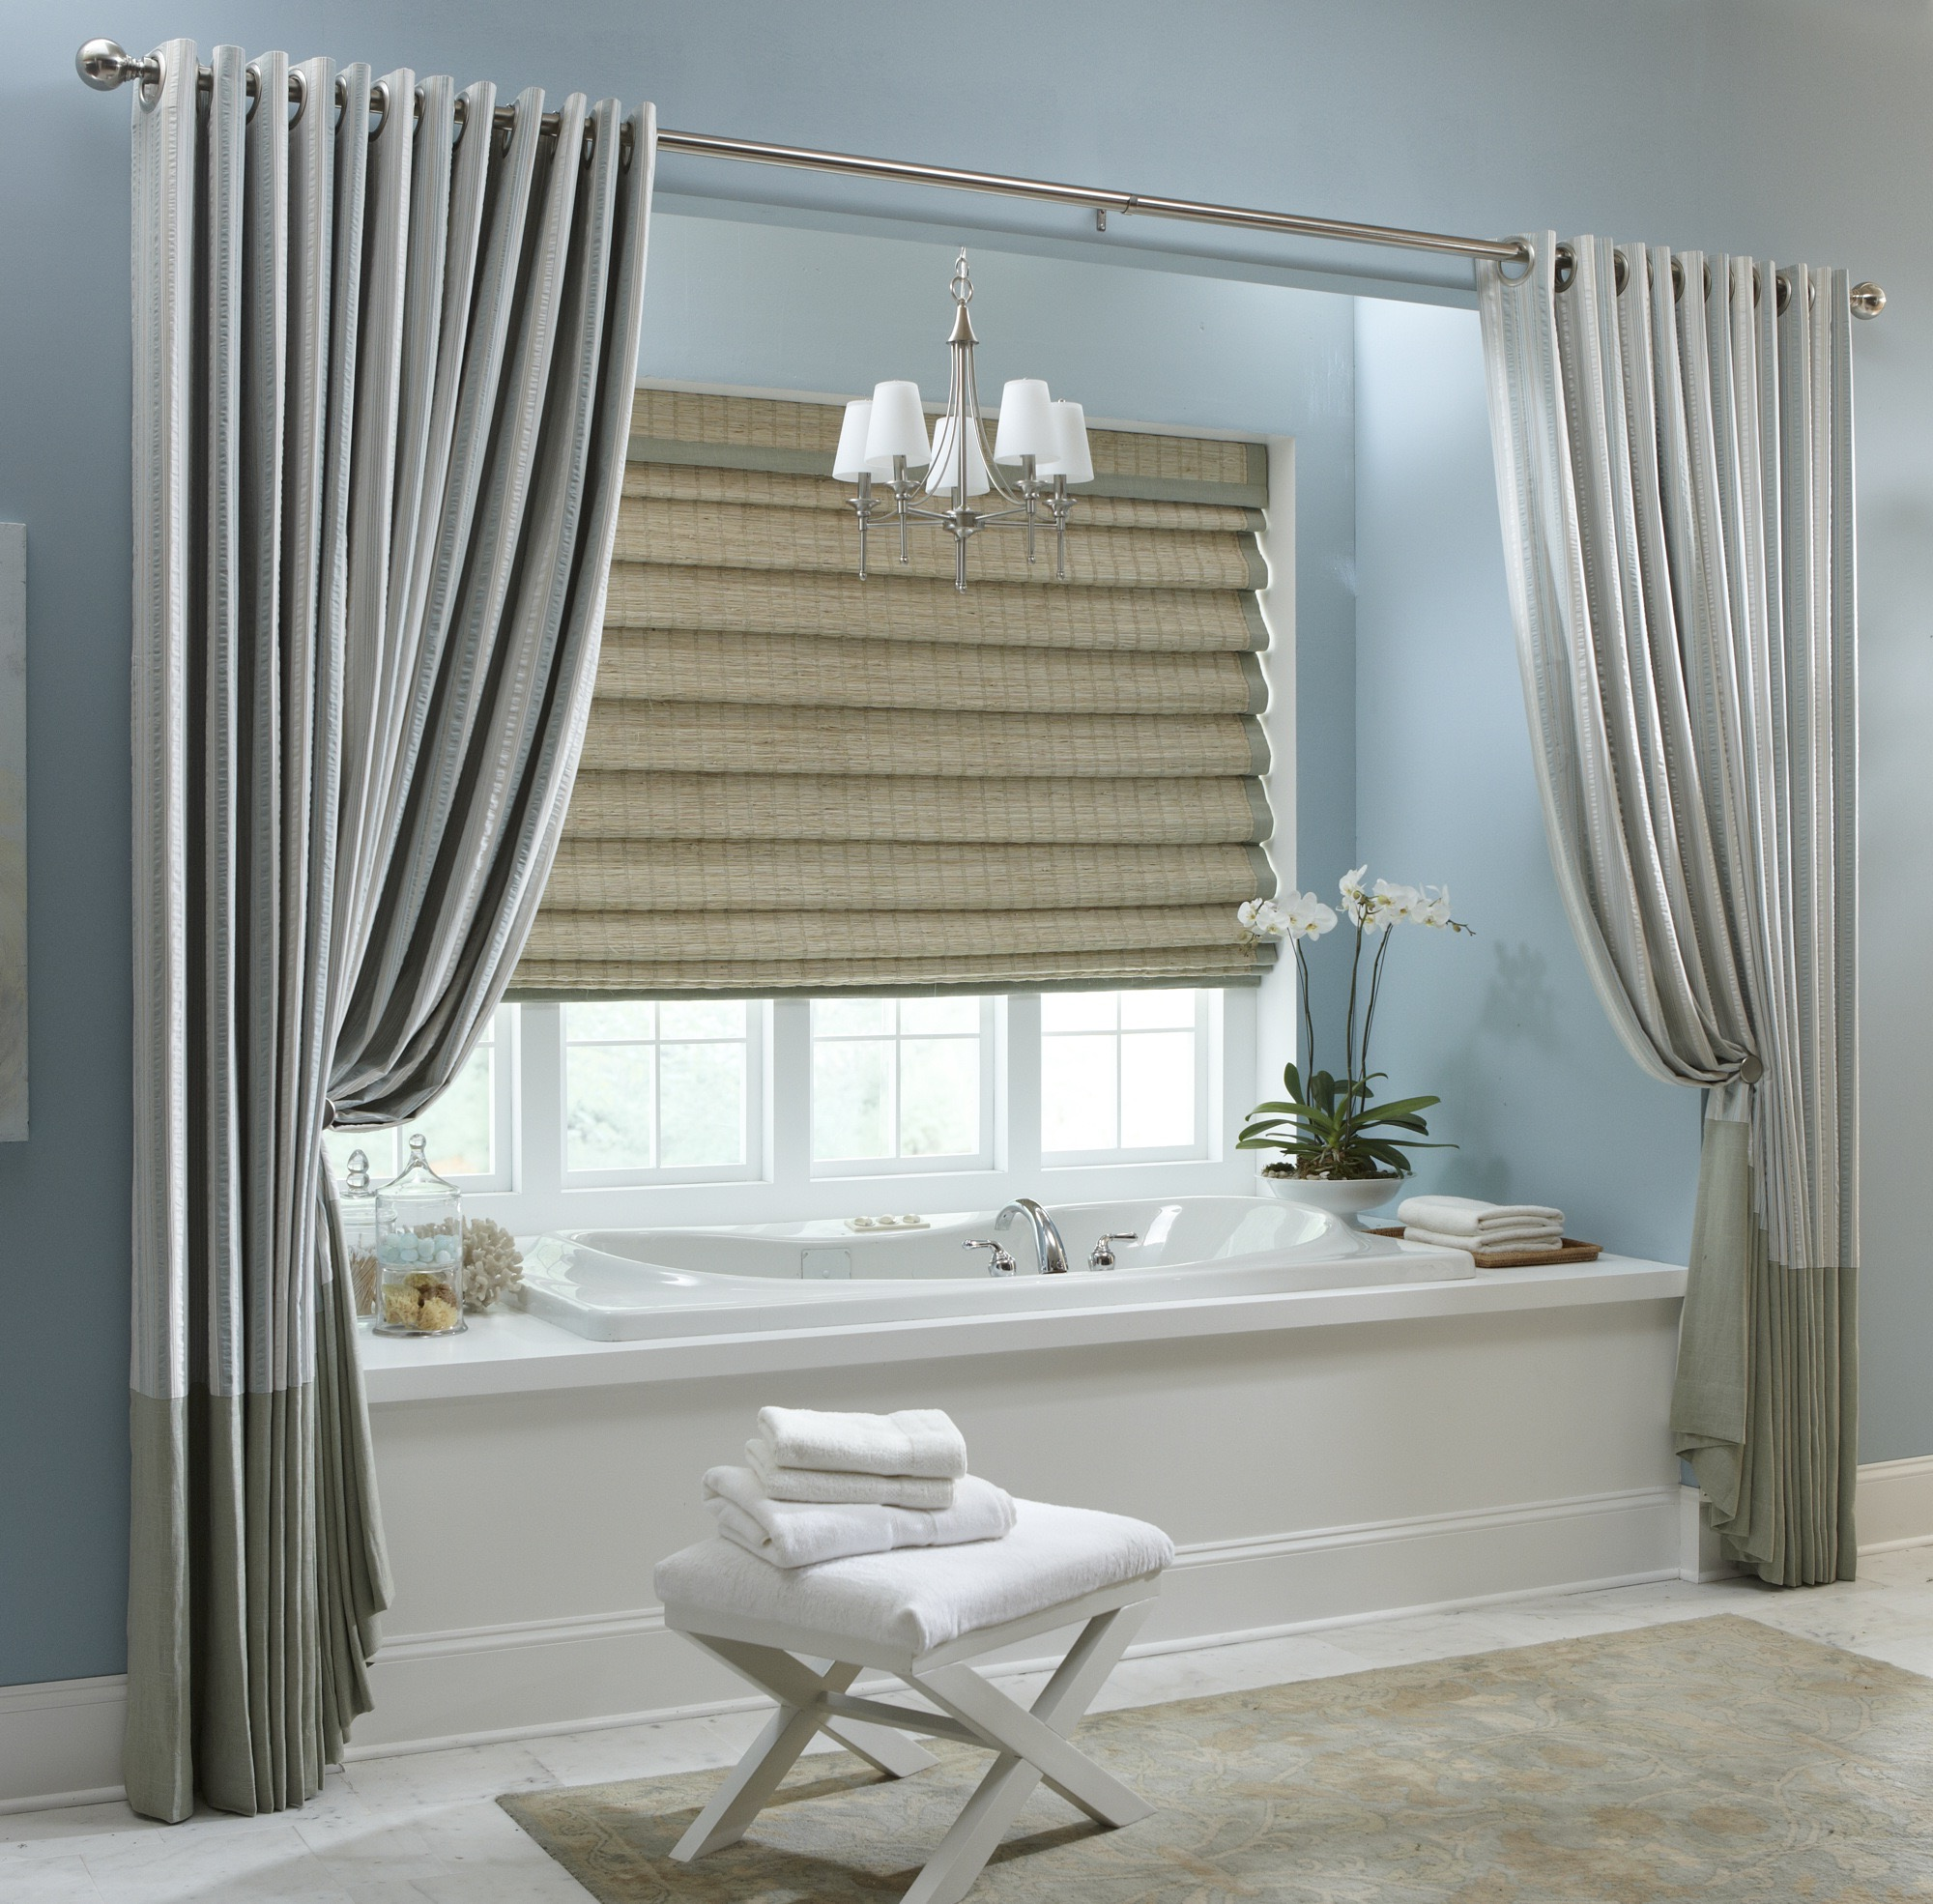 15 Beauty Bathroom Shower Curtain Ideas